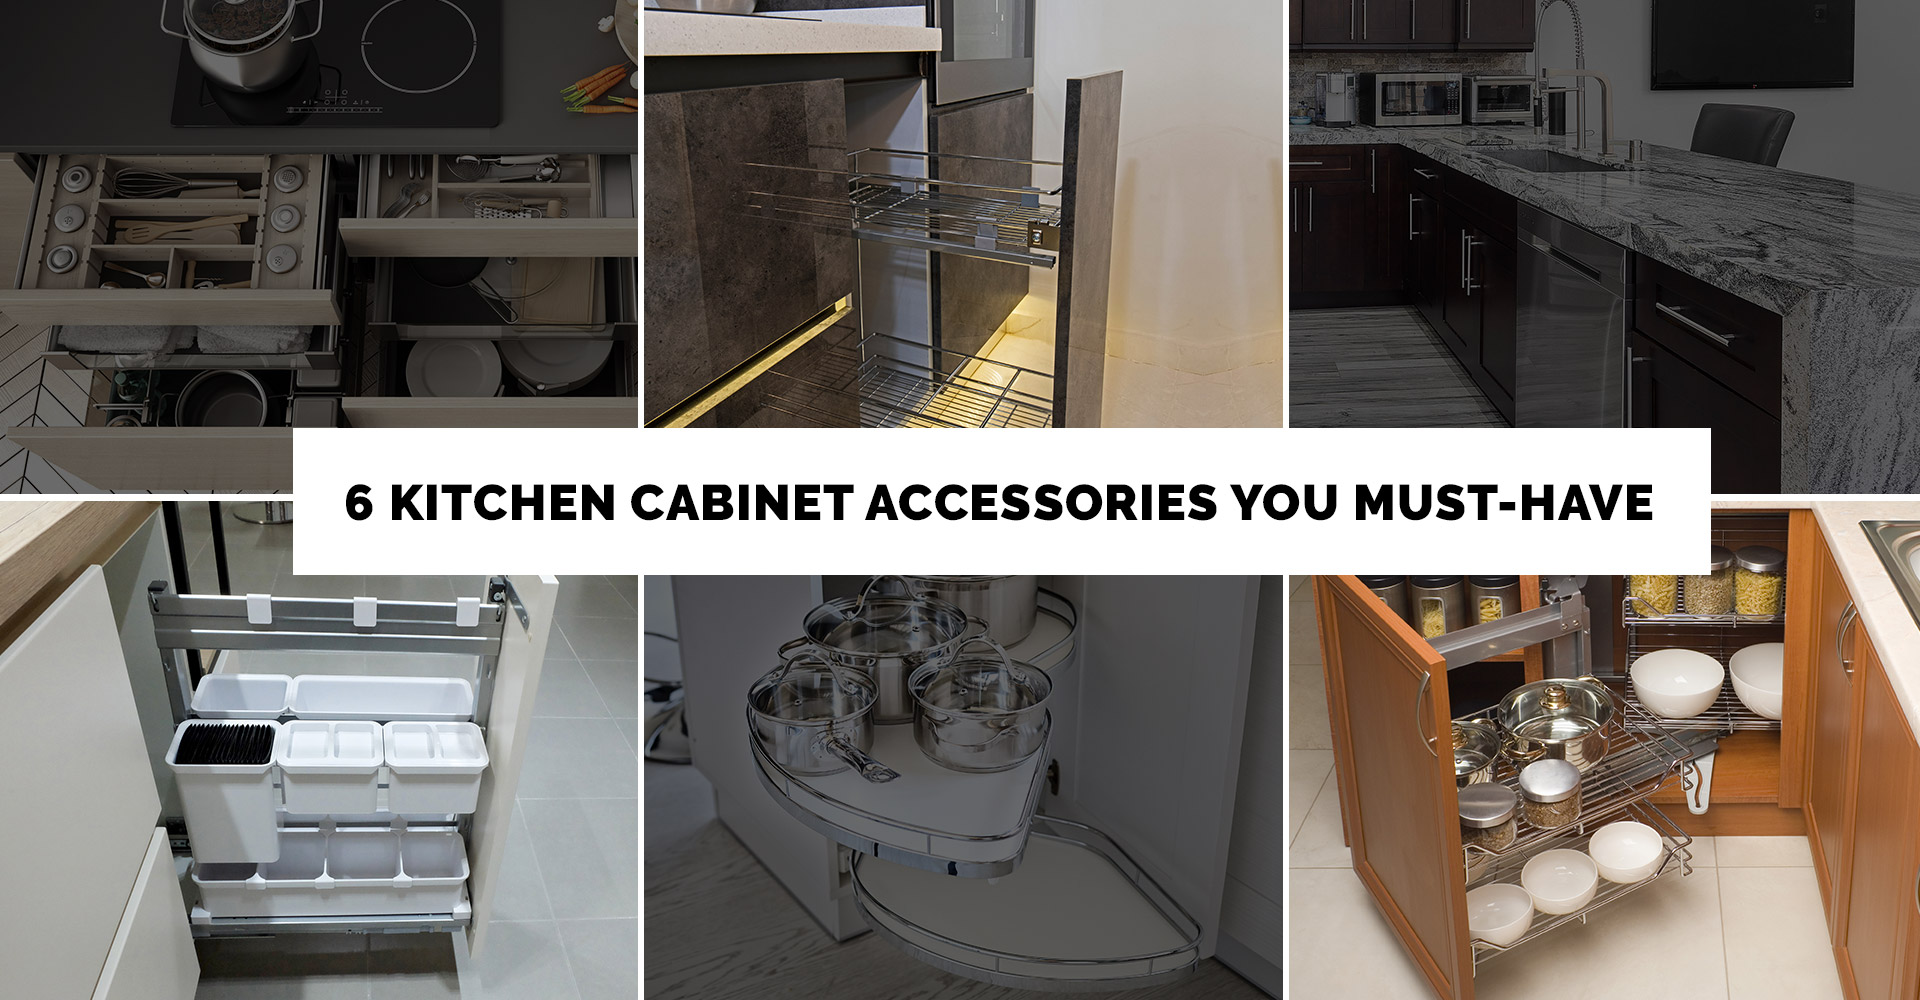 Top 6 Must-Have Kitchen Cabinet Accessories